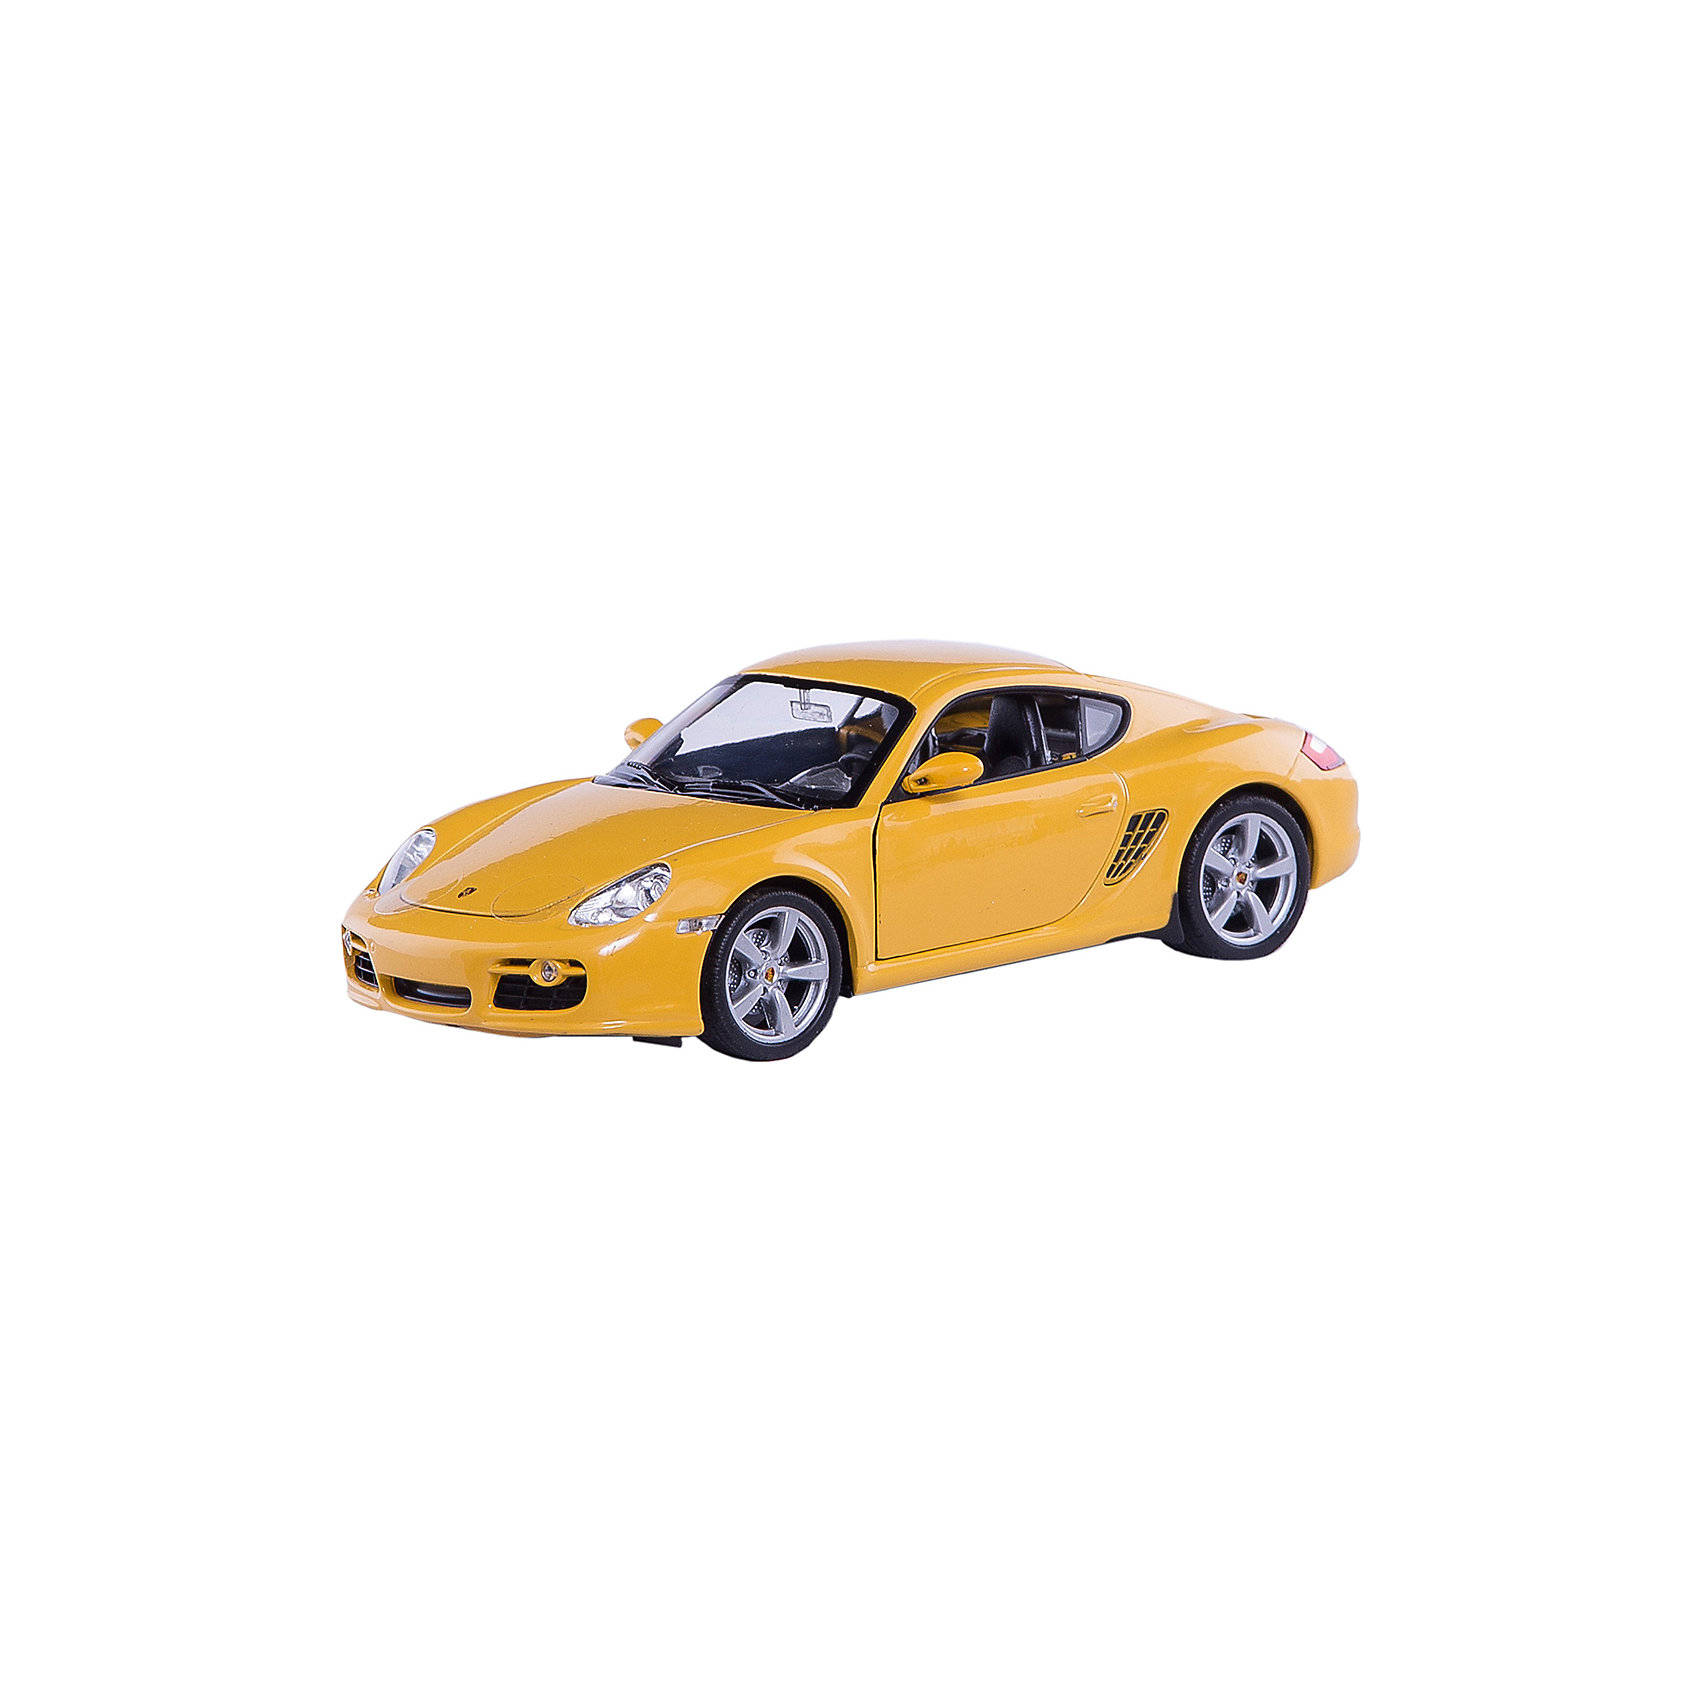 Welly Модель машины 1:24 Porsche Cayman S, Welly машинки s s космо page 1